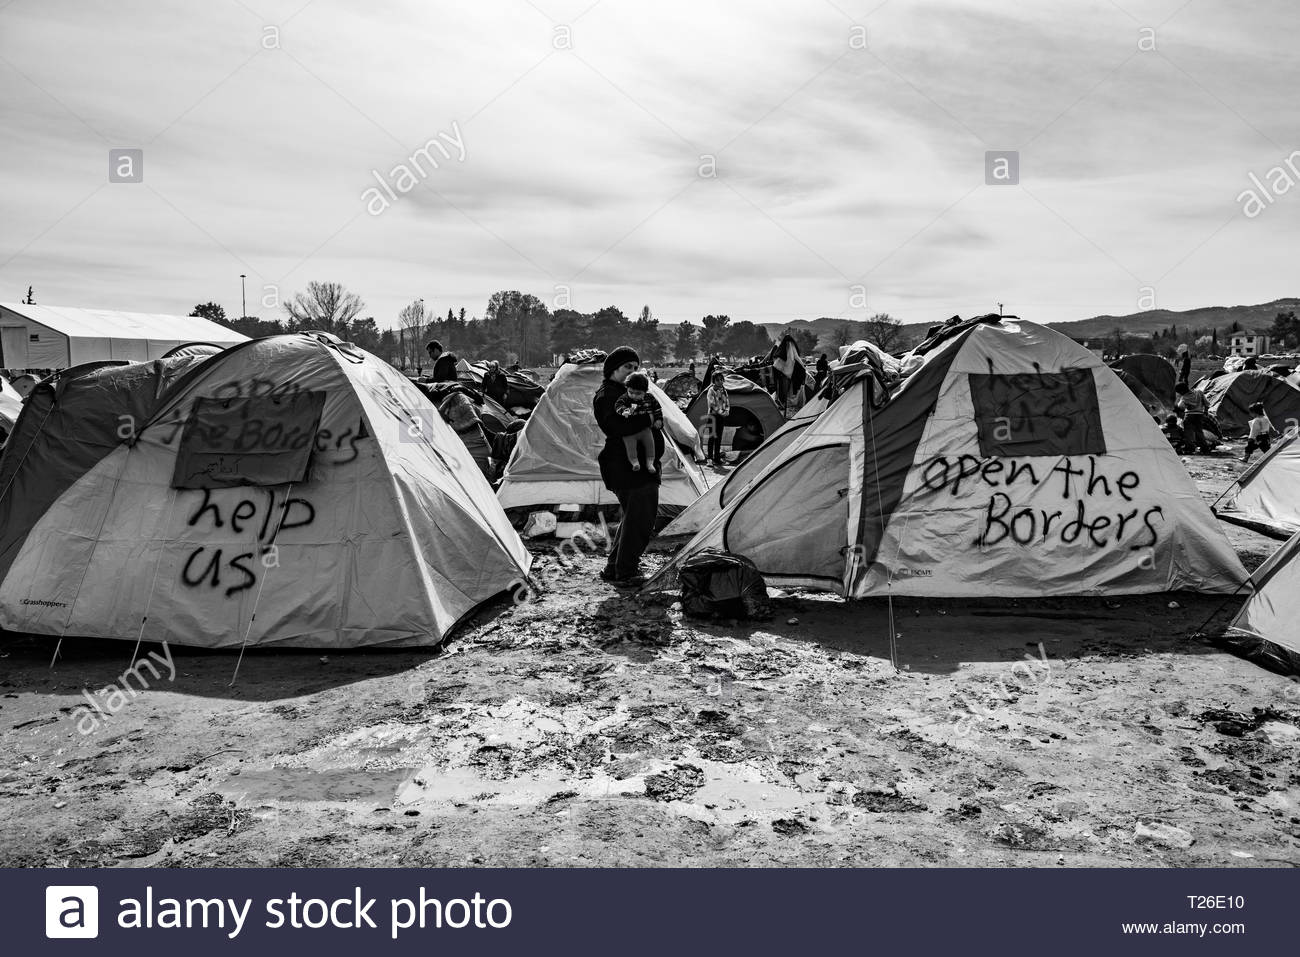 General view - the refugees sleep in overcrowded tents, hoping for the border to open at Greek-Macedonian border.  Idomeni, Greece, 8 March 2016.The refugee camp to which thousands of immigrants, mainly Syrians, are coming. It is occupied by people from different social strata. They are all found there fleeing the war, death and starvation. They continue their journey through Macedonia to the north and west of Europe. Not everyone manages to pass the verification of the documents, which leads to the separation of families. The refugees are living in difficult conditions. - Stock Image